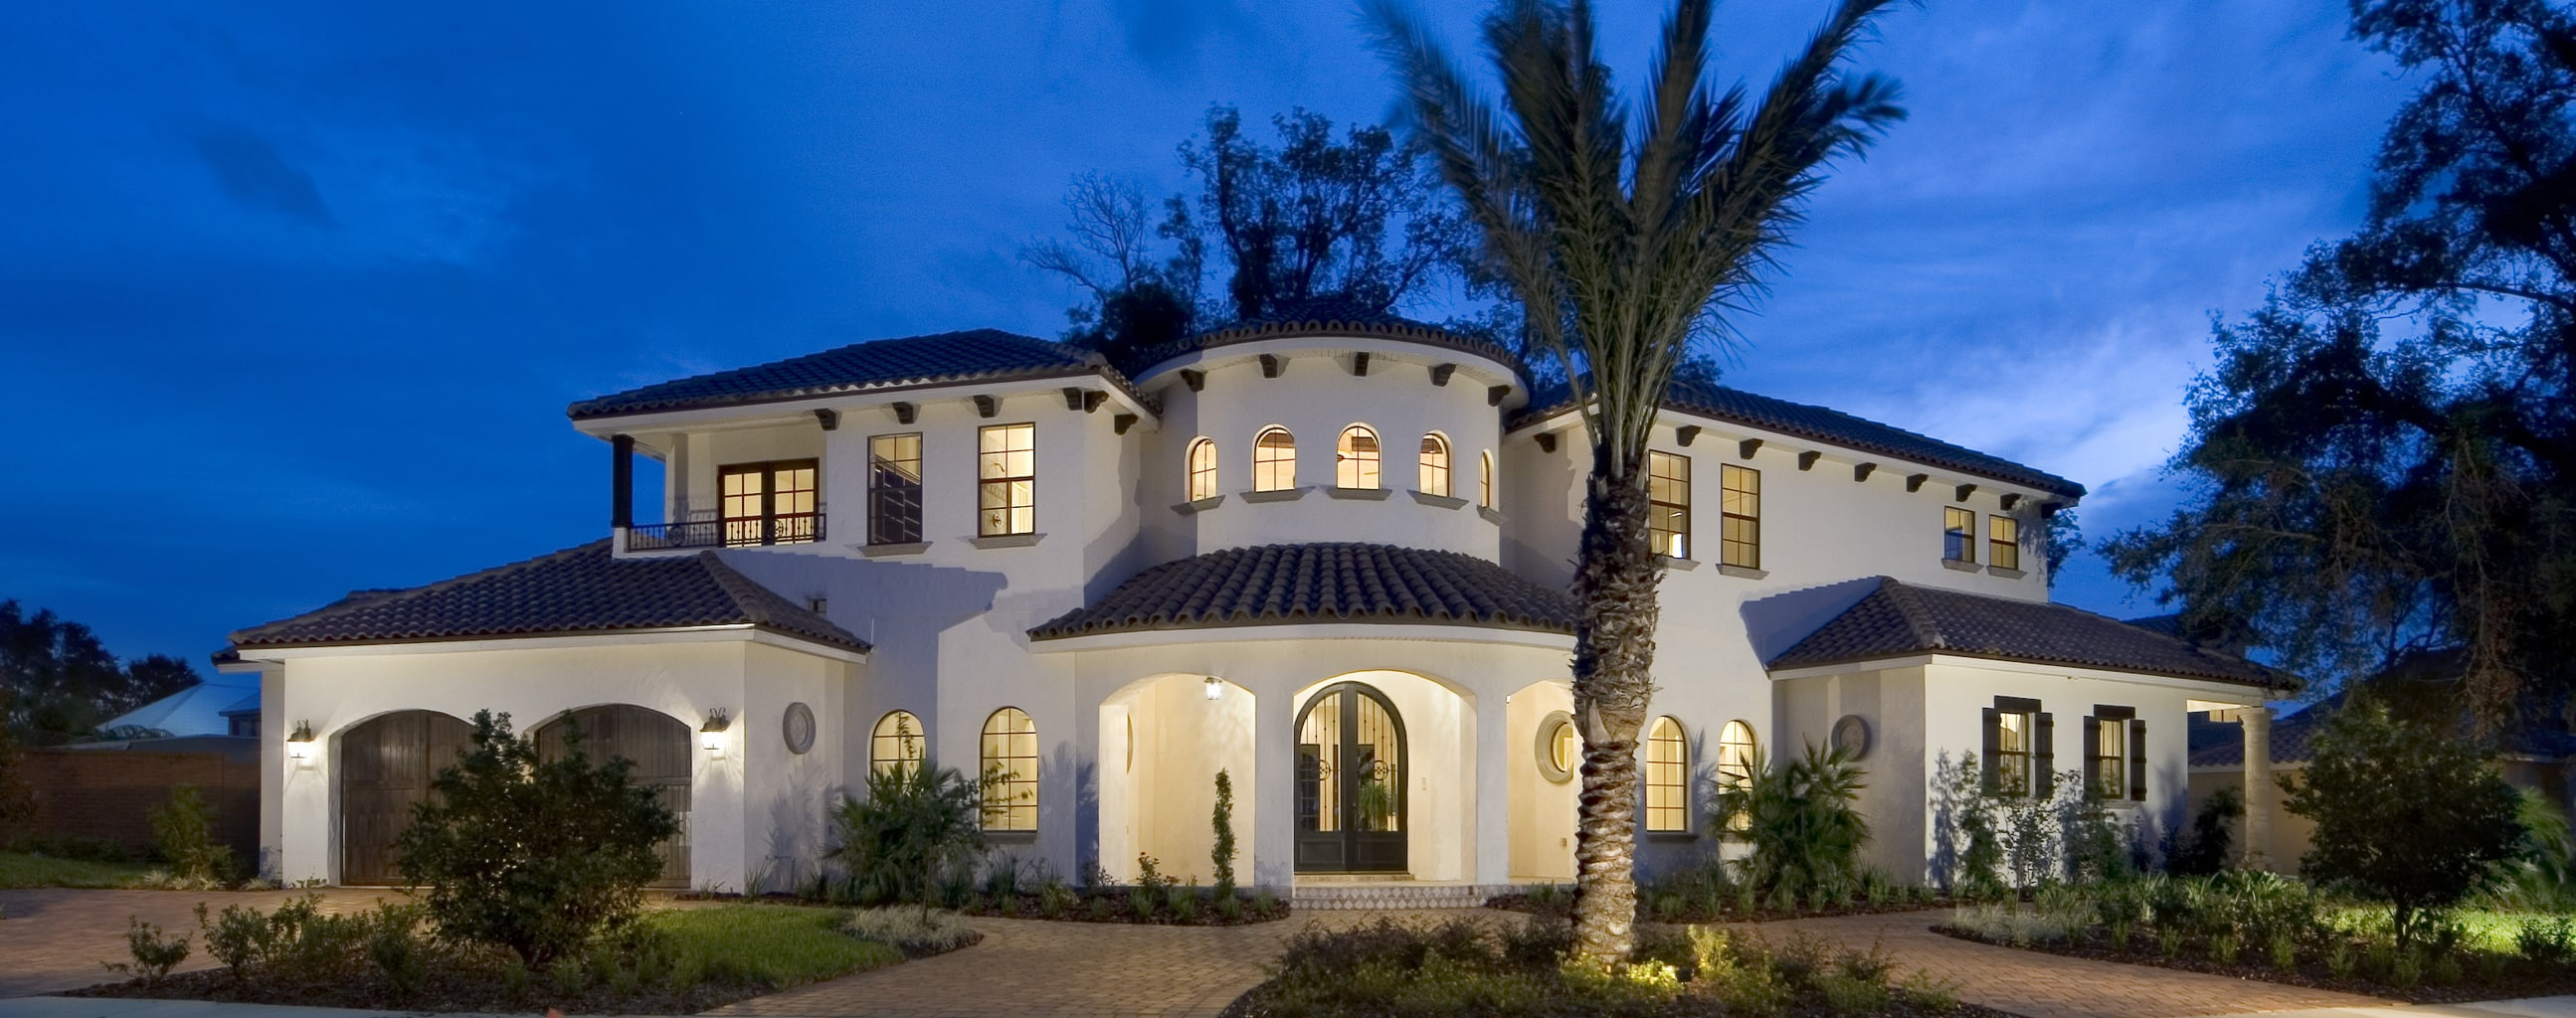 3 questions to ask for stucco with style for Questions to ask when building a home